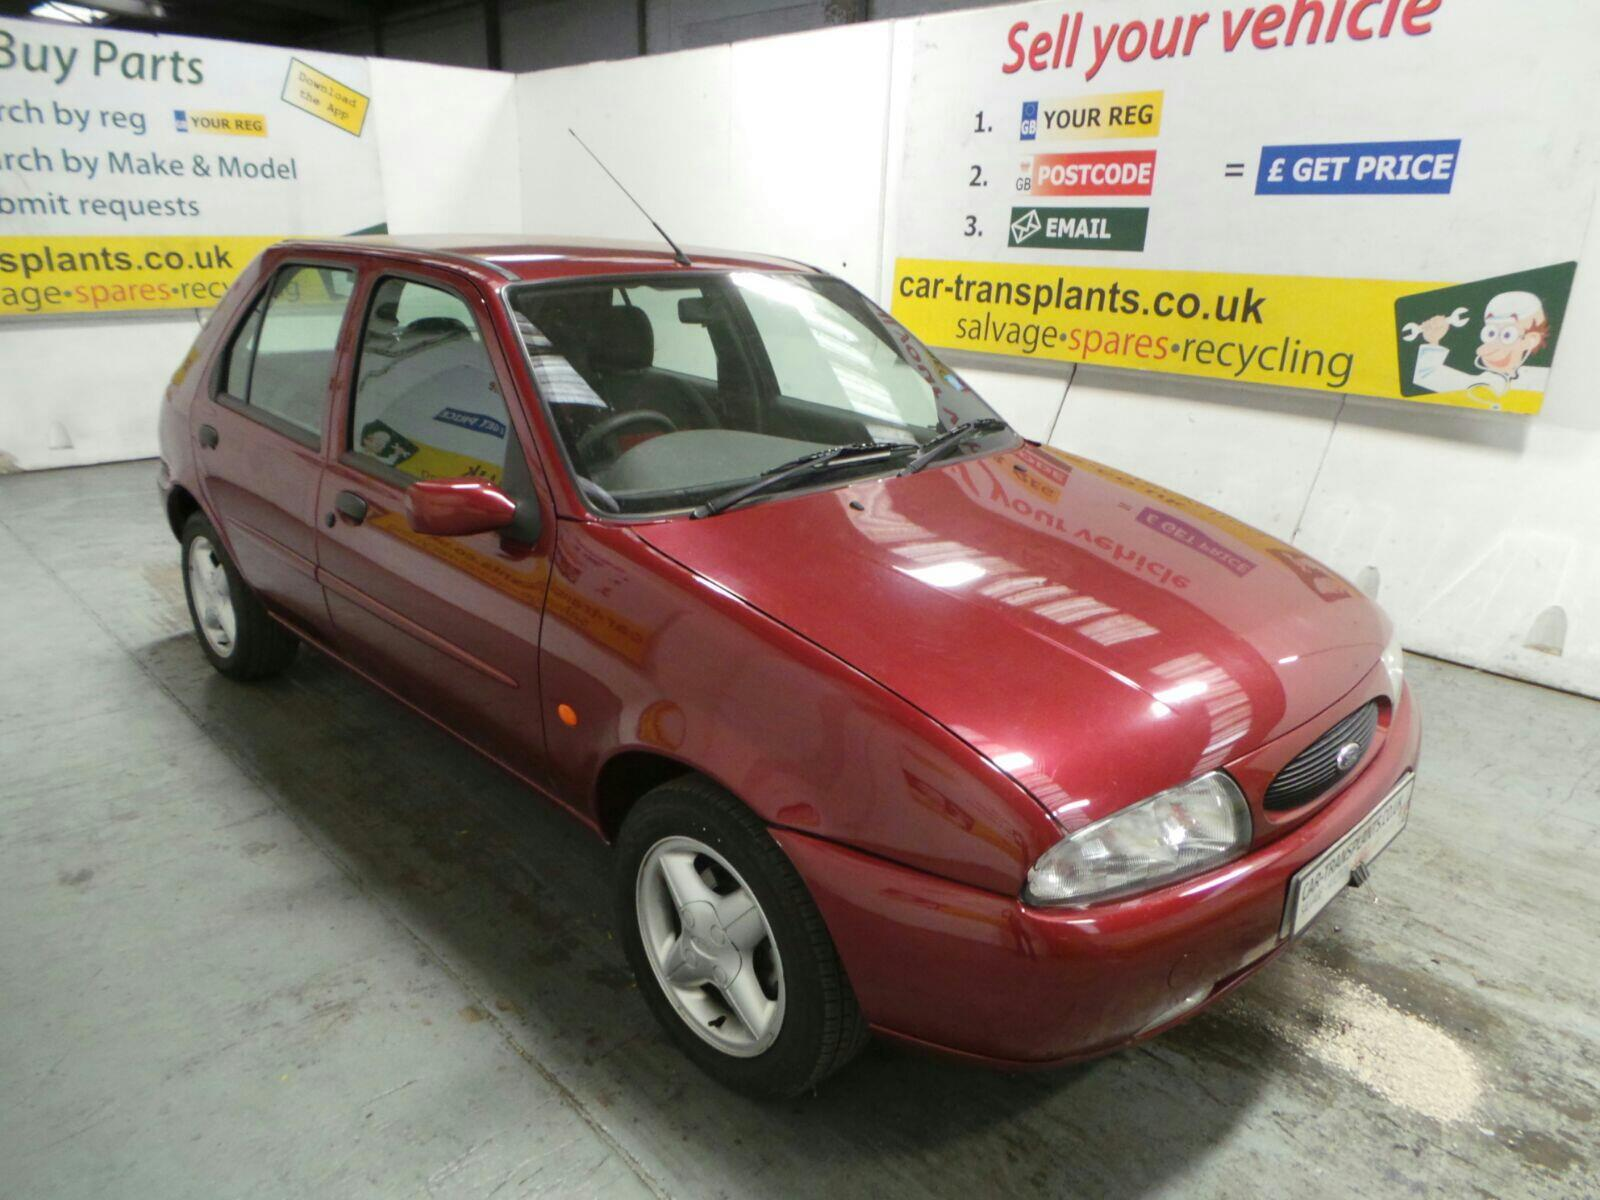 1999 FORD FIESTA MK4 (BE91) 1996 TO 2002 5 DOOR HATCHBACK